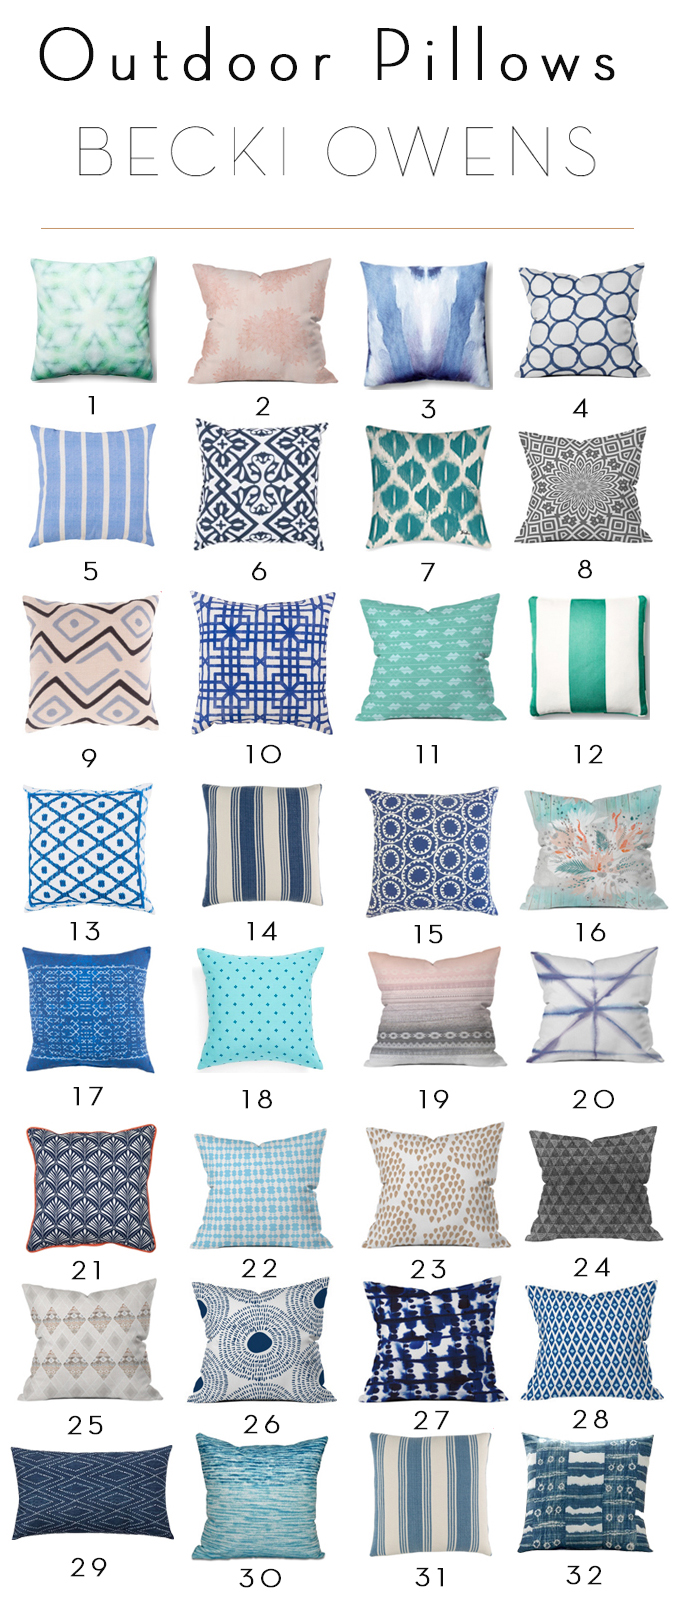 32 Outdoor Pillows under $100